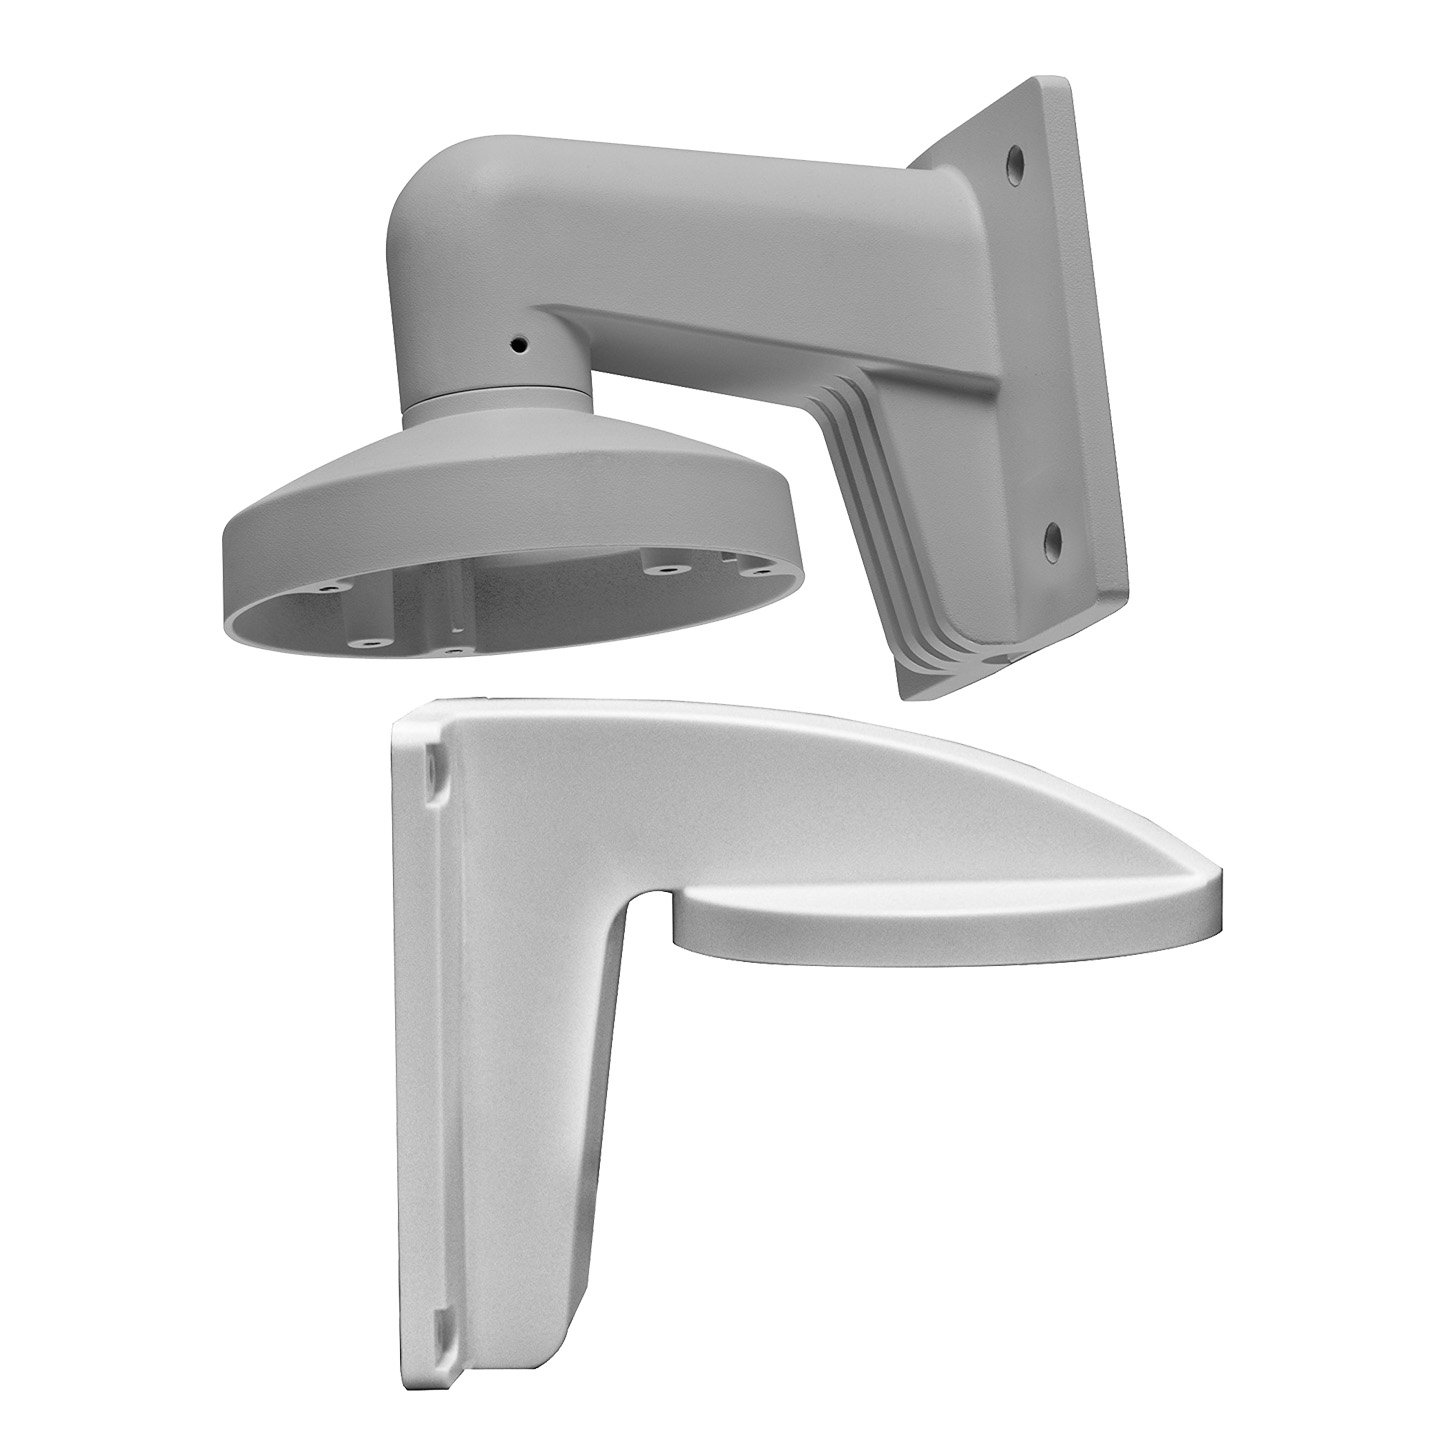 HIFROM Original DS-1258ZJ With DS-1272ZJ-110 Indoor Wall Mount Bracket for Fixed Lens Dome IP Cameras